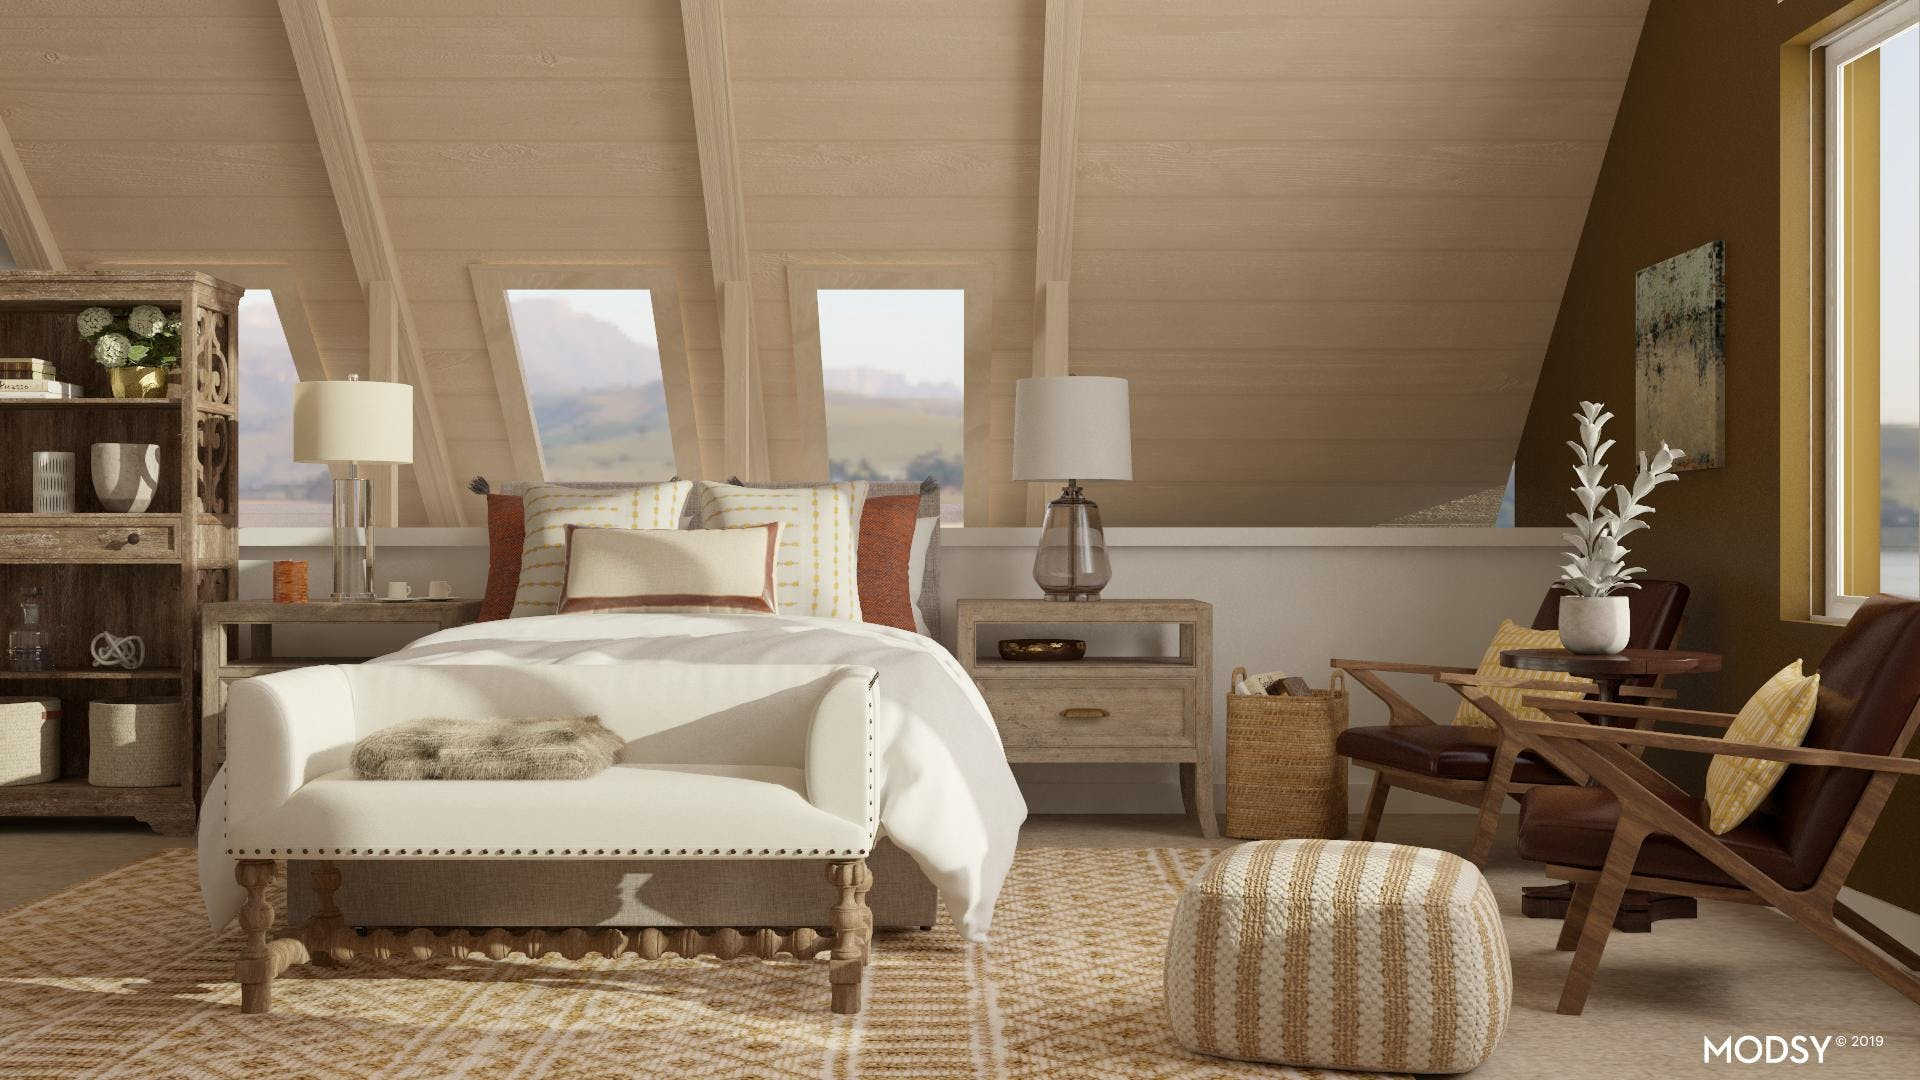 Earth Tones in this transitional Bedroom